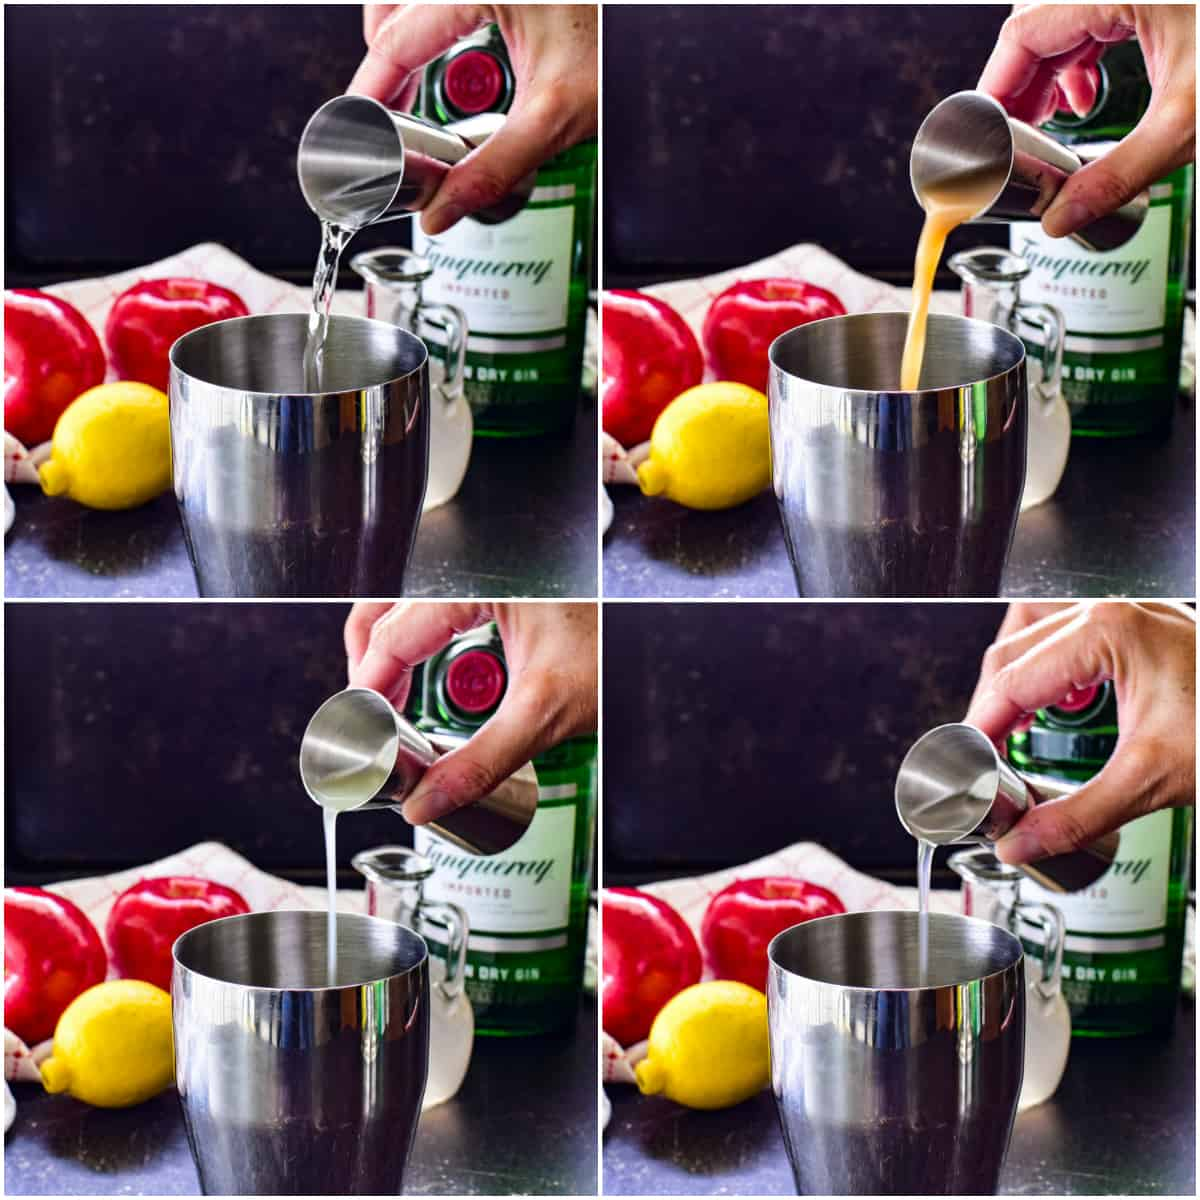 Step by step shots of mixing an Apple Gin Fizz